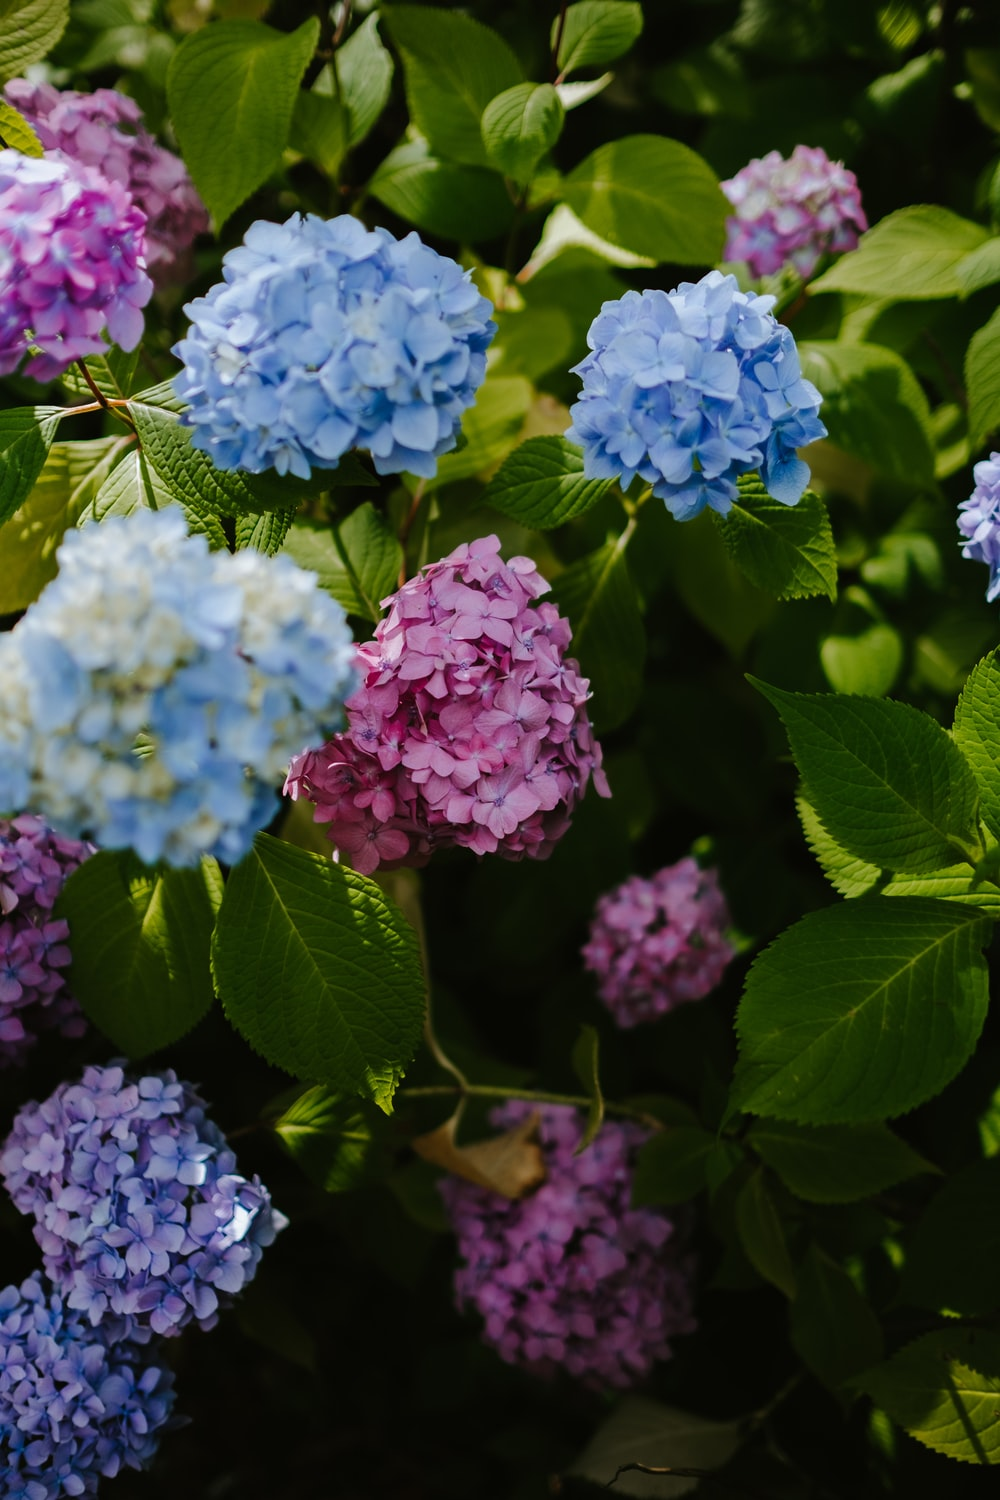 blue and pink petaled flowers